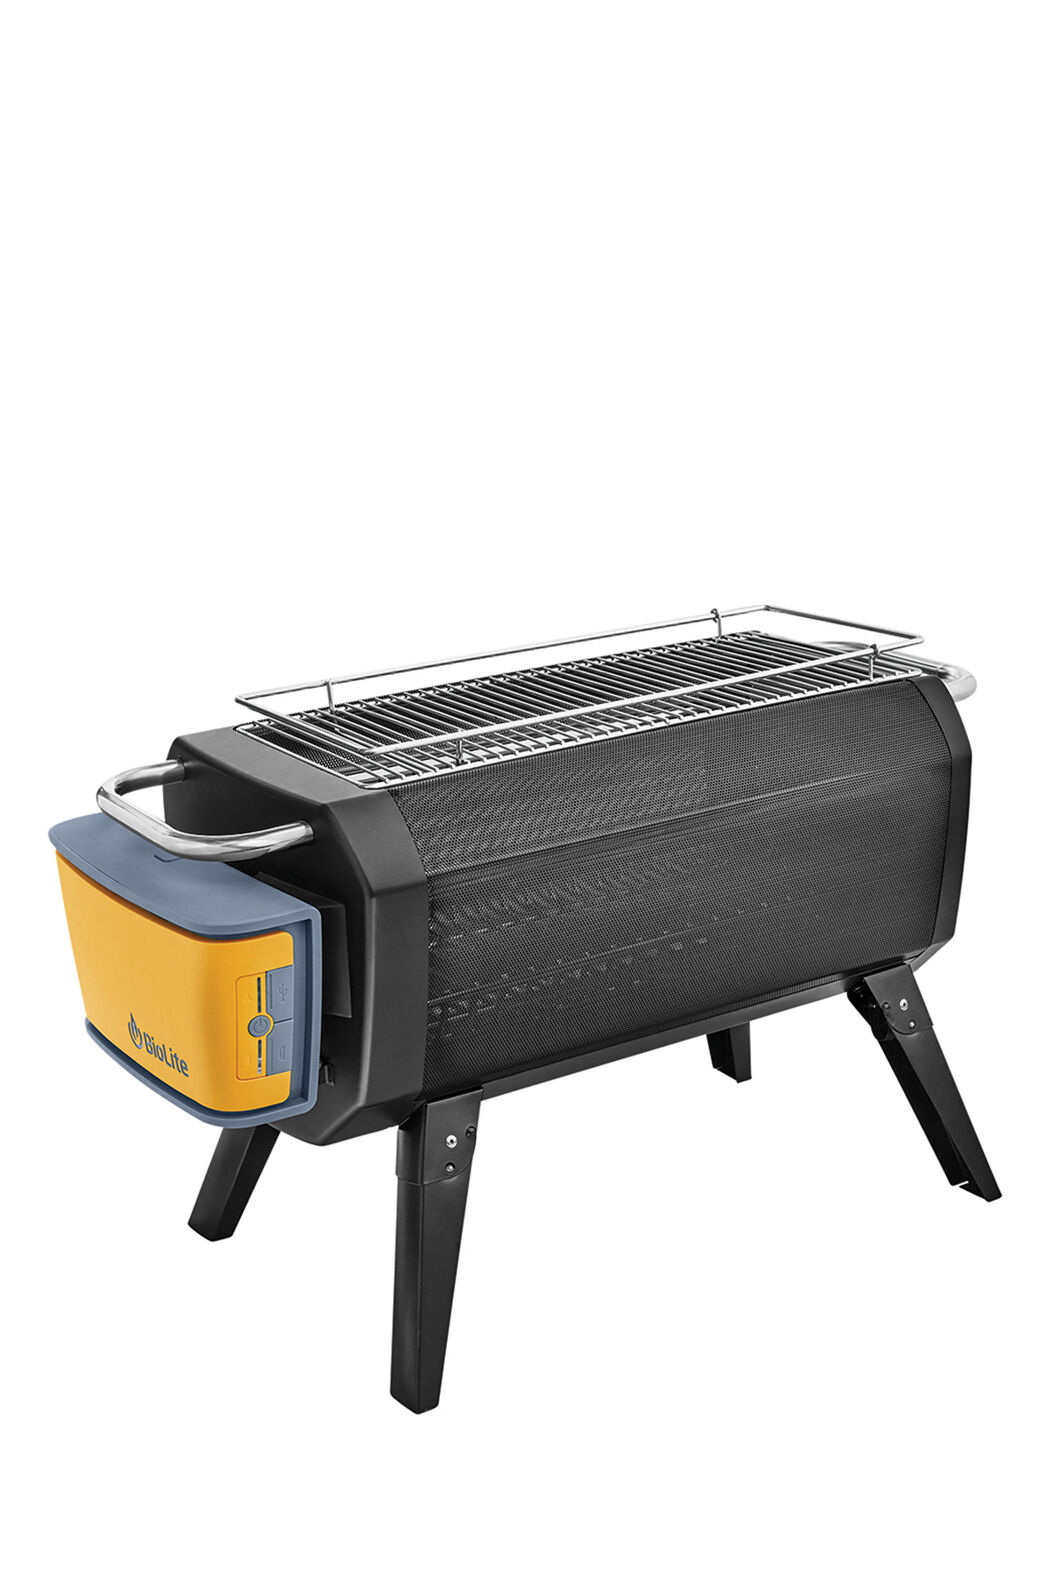 Biolite Fire Pit and Grill, None, hi-res